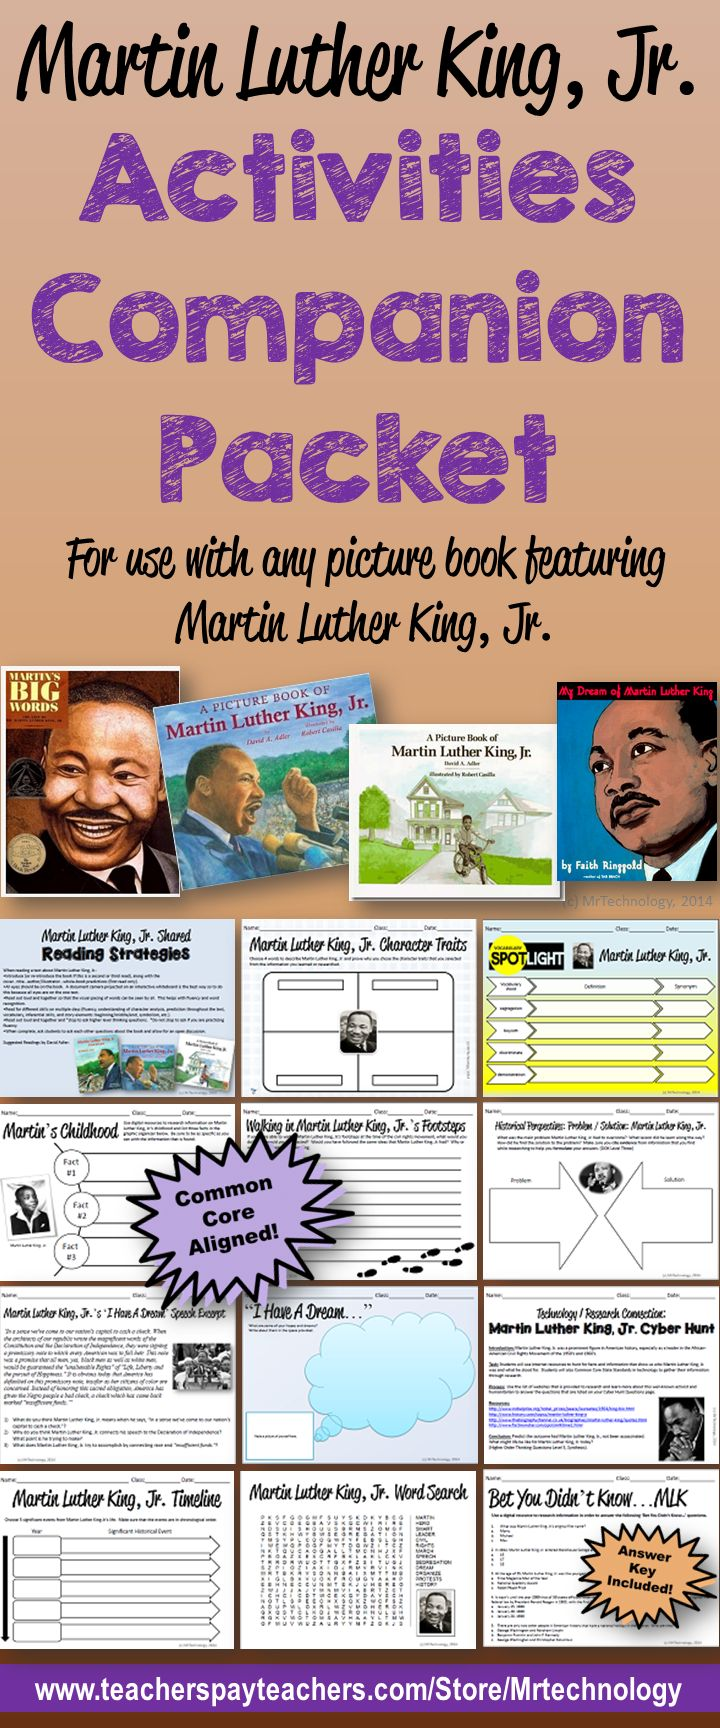 Martin Luther King, Jr. Activities Companion Bundle can be used with any read aloud or picture book and with multiple grade levels.   This 23-page Common Core-Aligned packet includes: •	Martin Luther King, Jr. Character Traits Graphic Organizer •	Martin Luther King, Jr. Vocabulary Spotlight •	Then & Now Venn Diagram Graphic Organizer •	Martin Luther King, Jr.'s Childhood Graphic Organizer (Research) ...and much more!